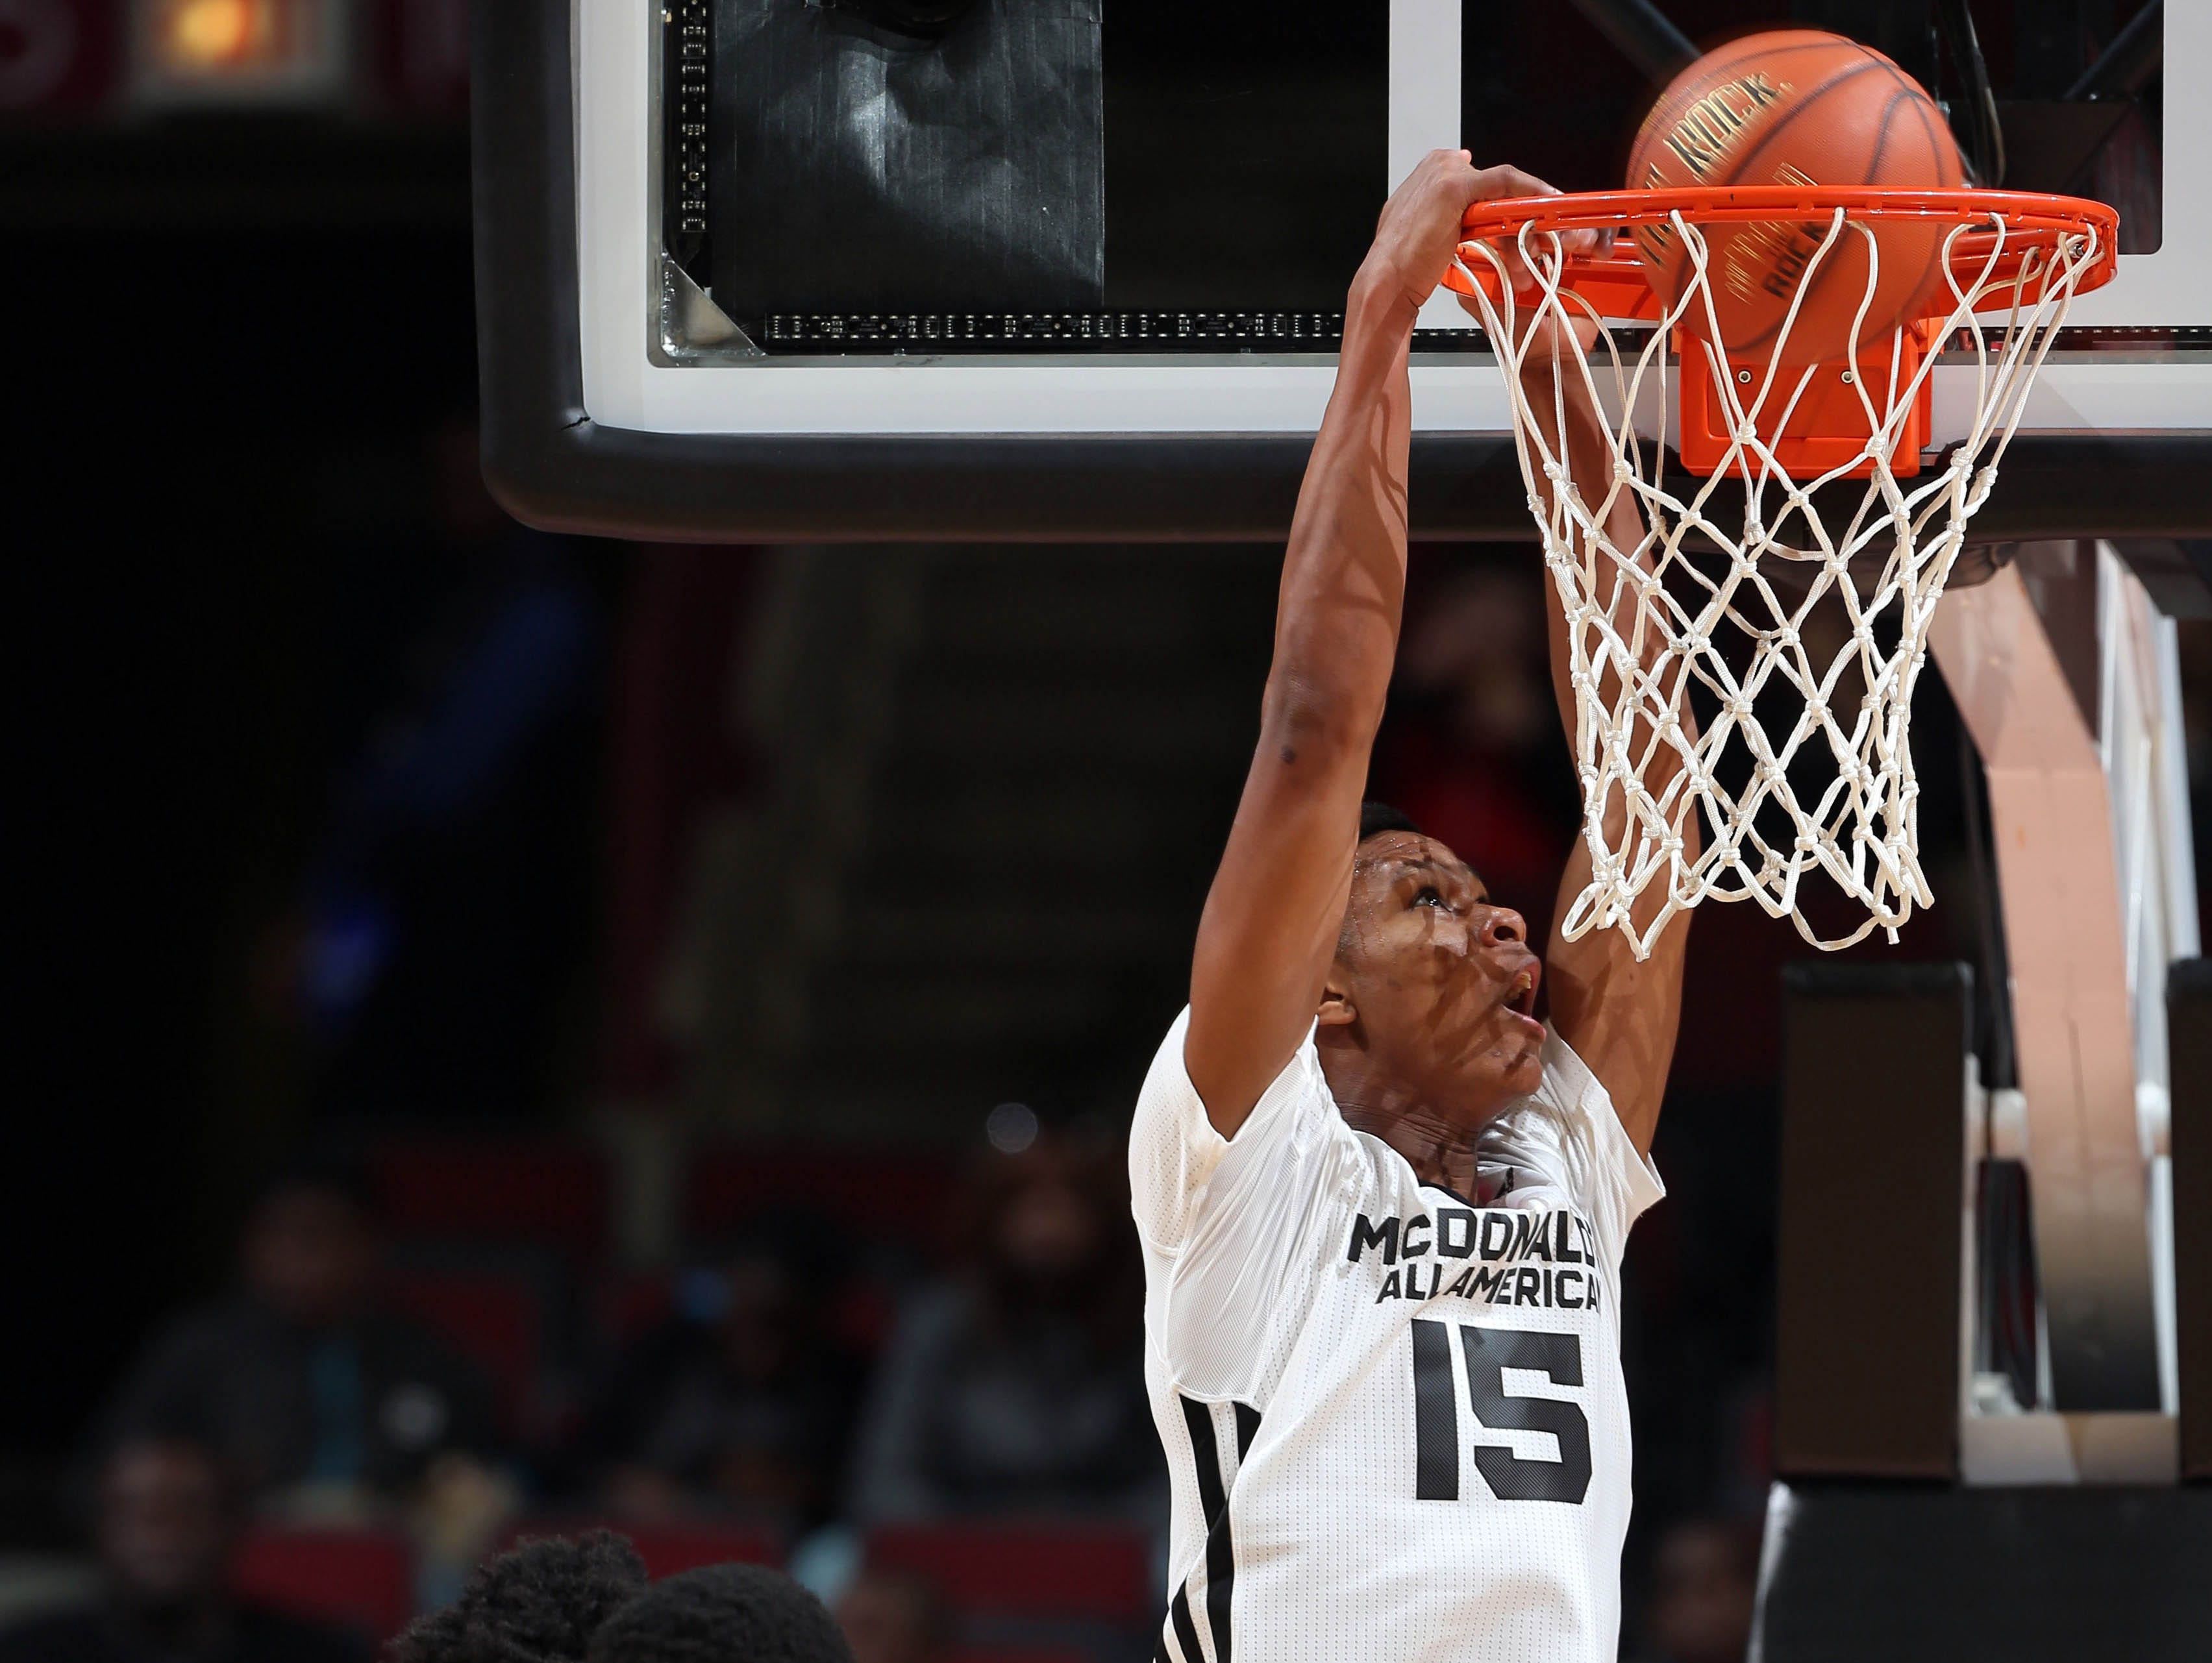 Apr 1, 2015; Chicago, IL, USA; McDonalds High School All American West forward PJ Dozier dunks during the McDonalds High School All American Game at the United Center. Mandatory Credit: Brian Spurlock-USA TODAY Sports